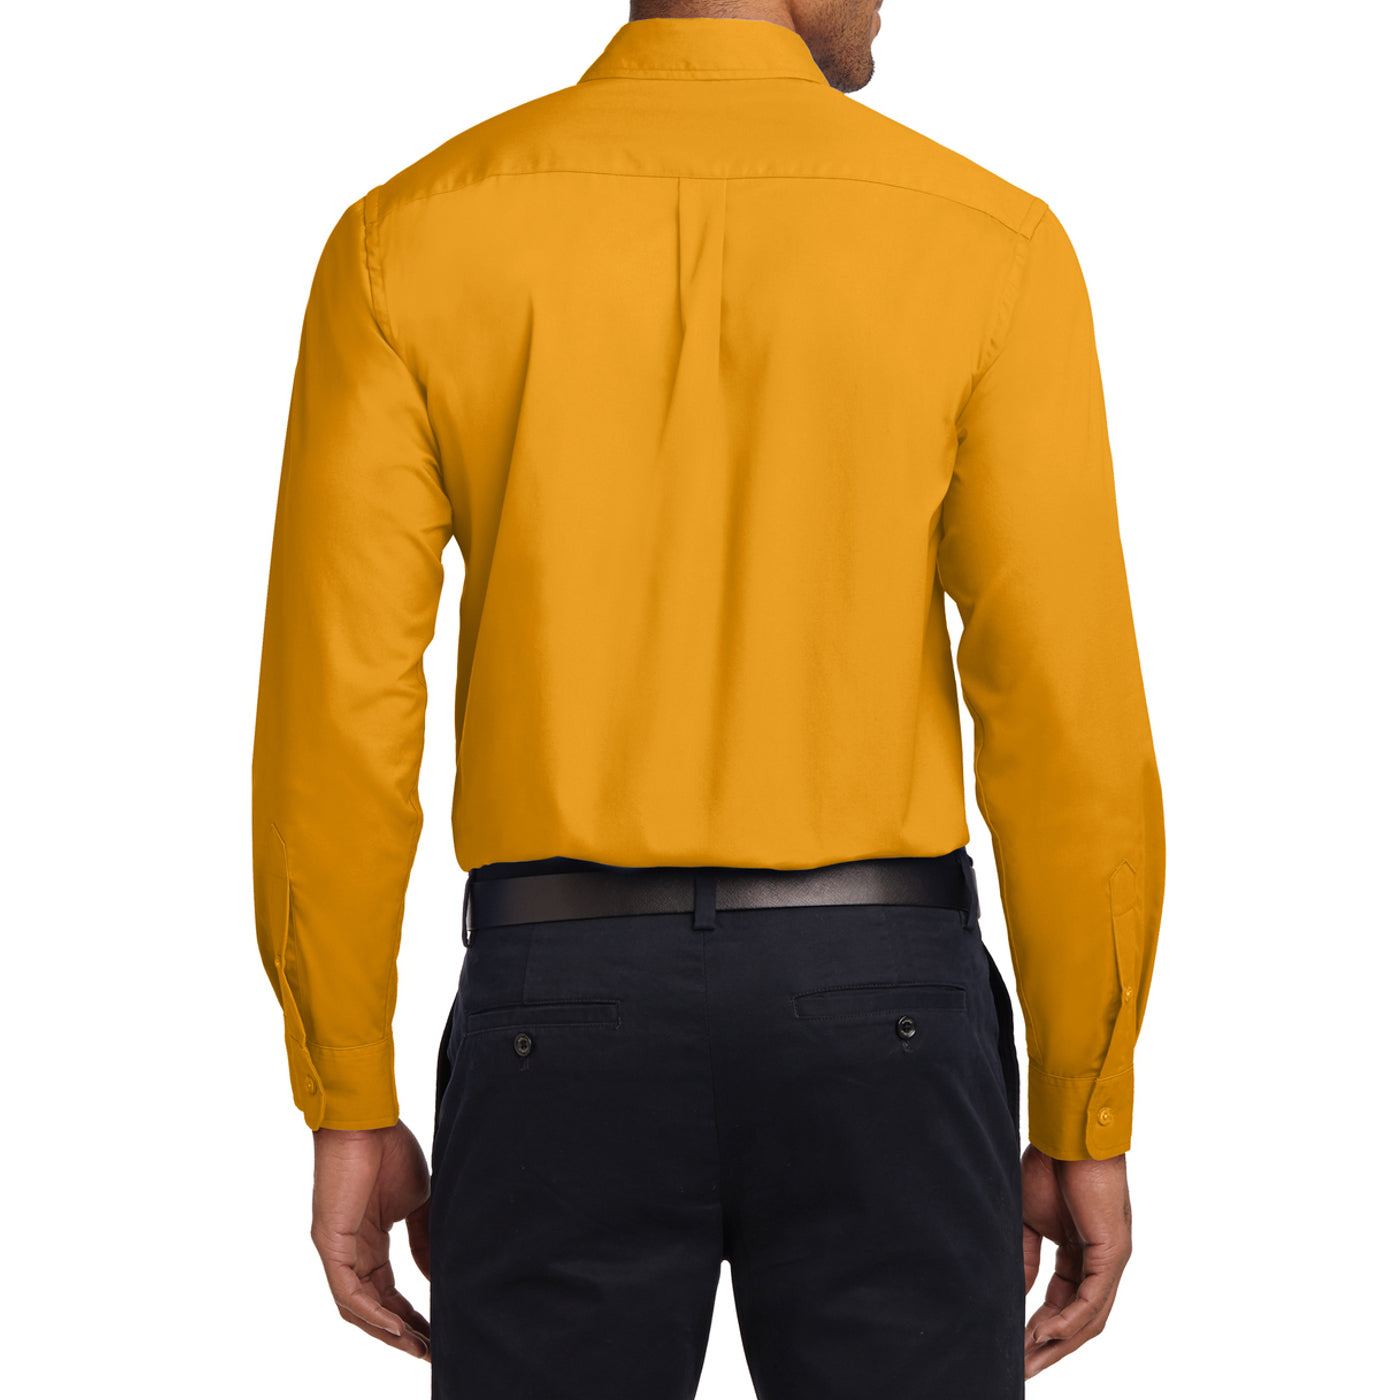 Men's Long Sleeve Easy Care Shirt - Athletic Gold/ Light Stone - Back